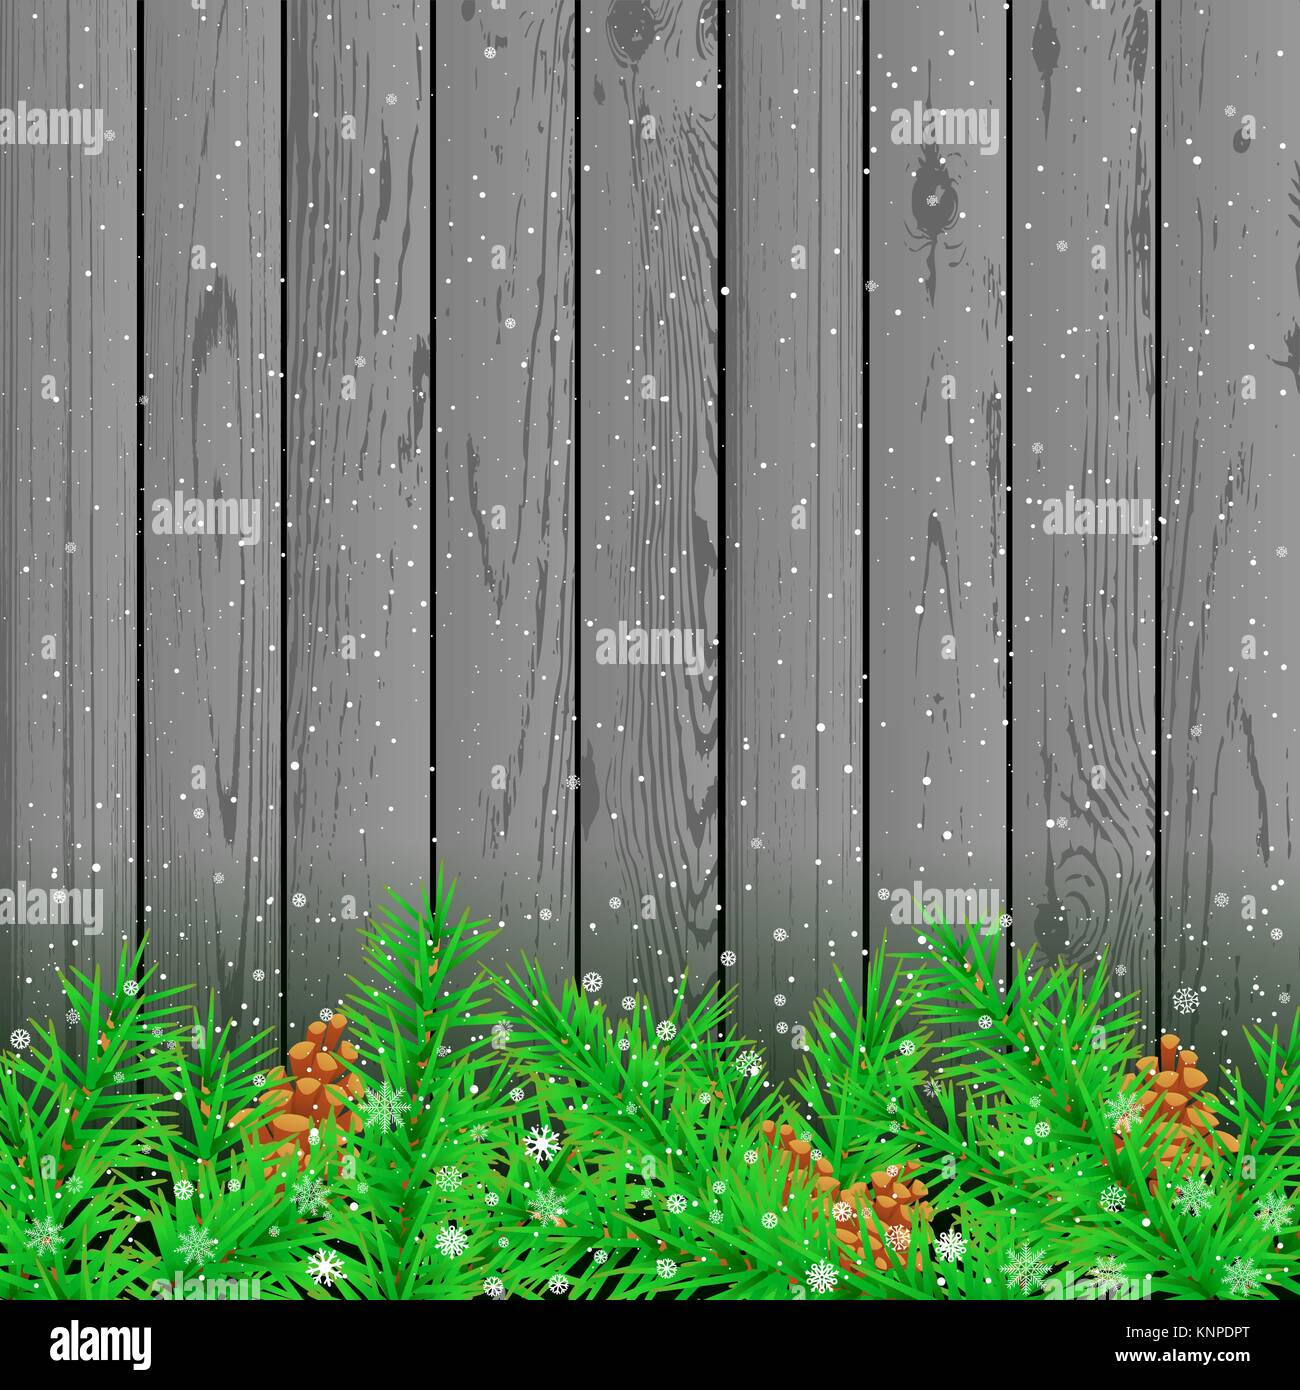 Spruce snow gray wood background - Stock Vector